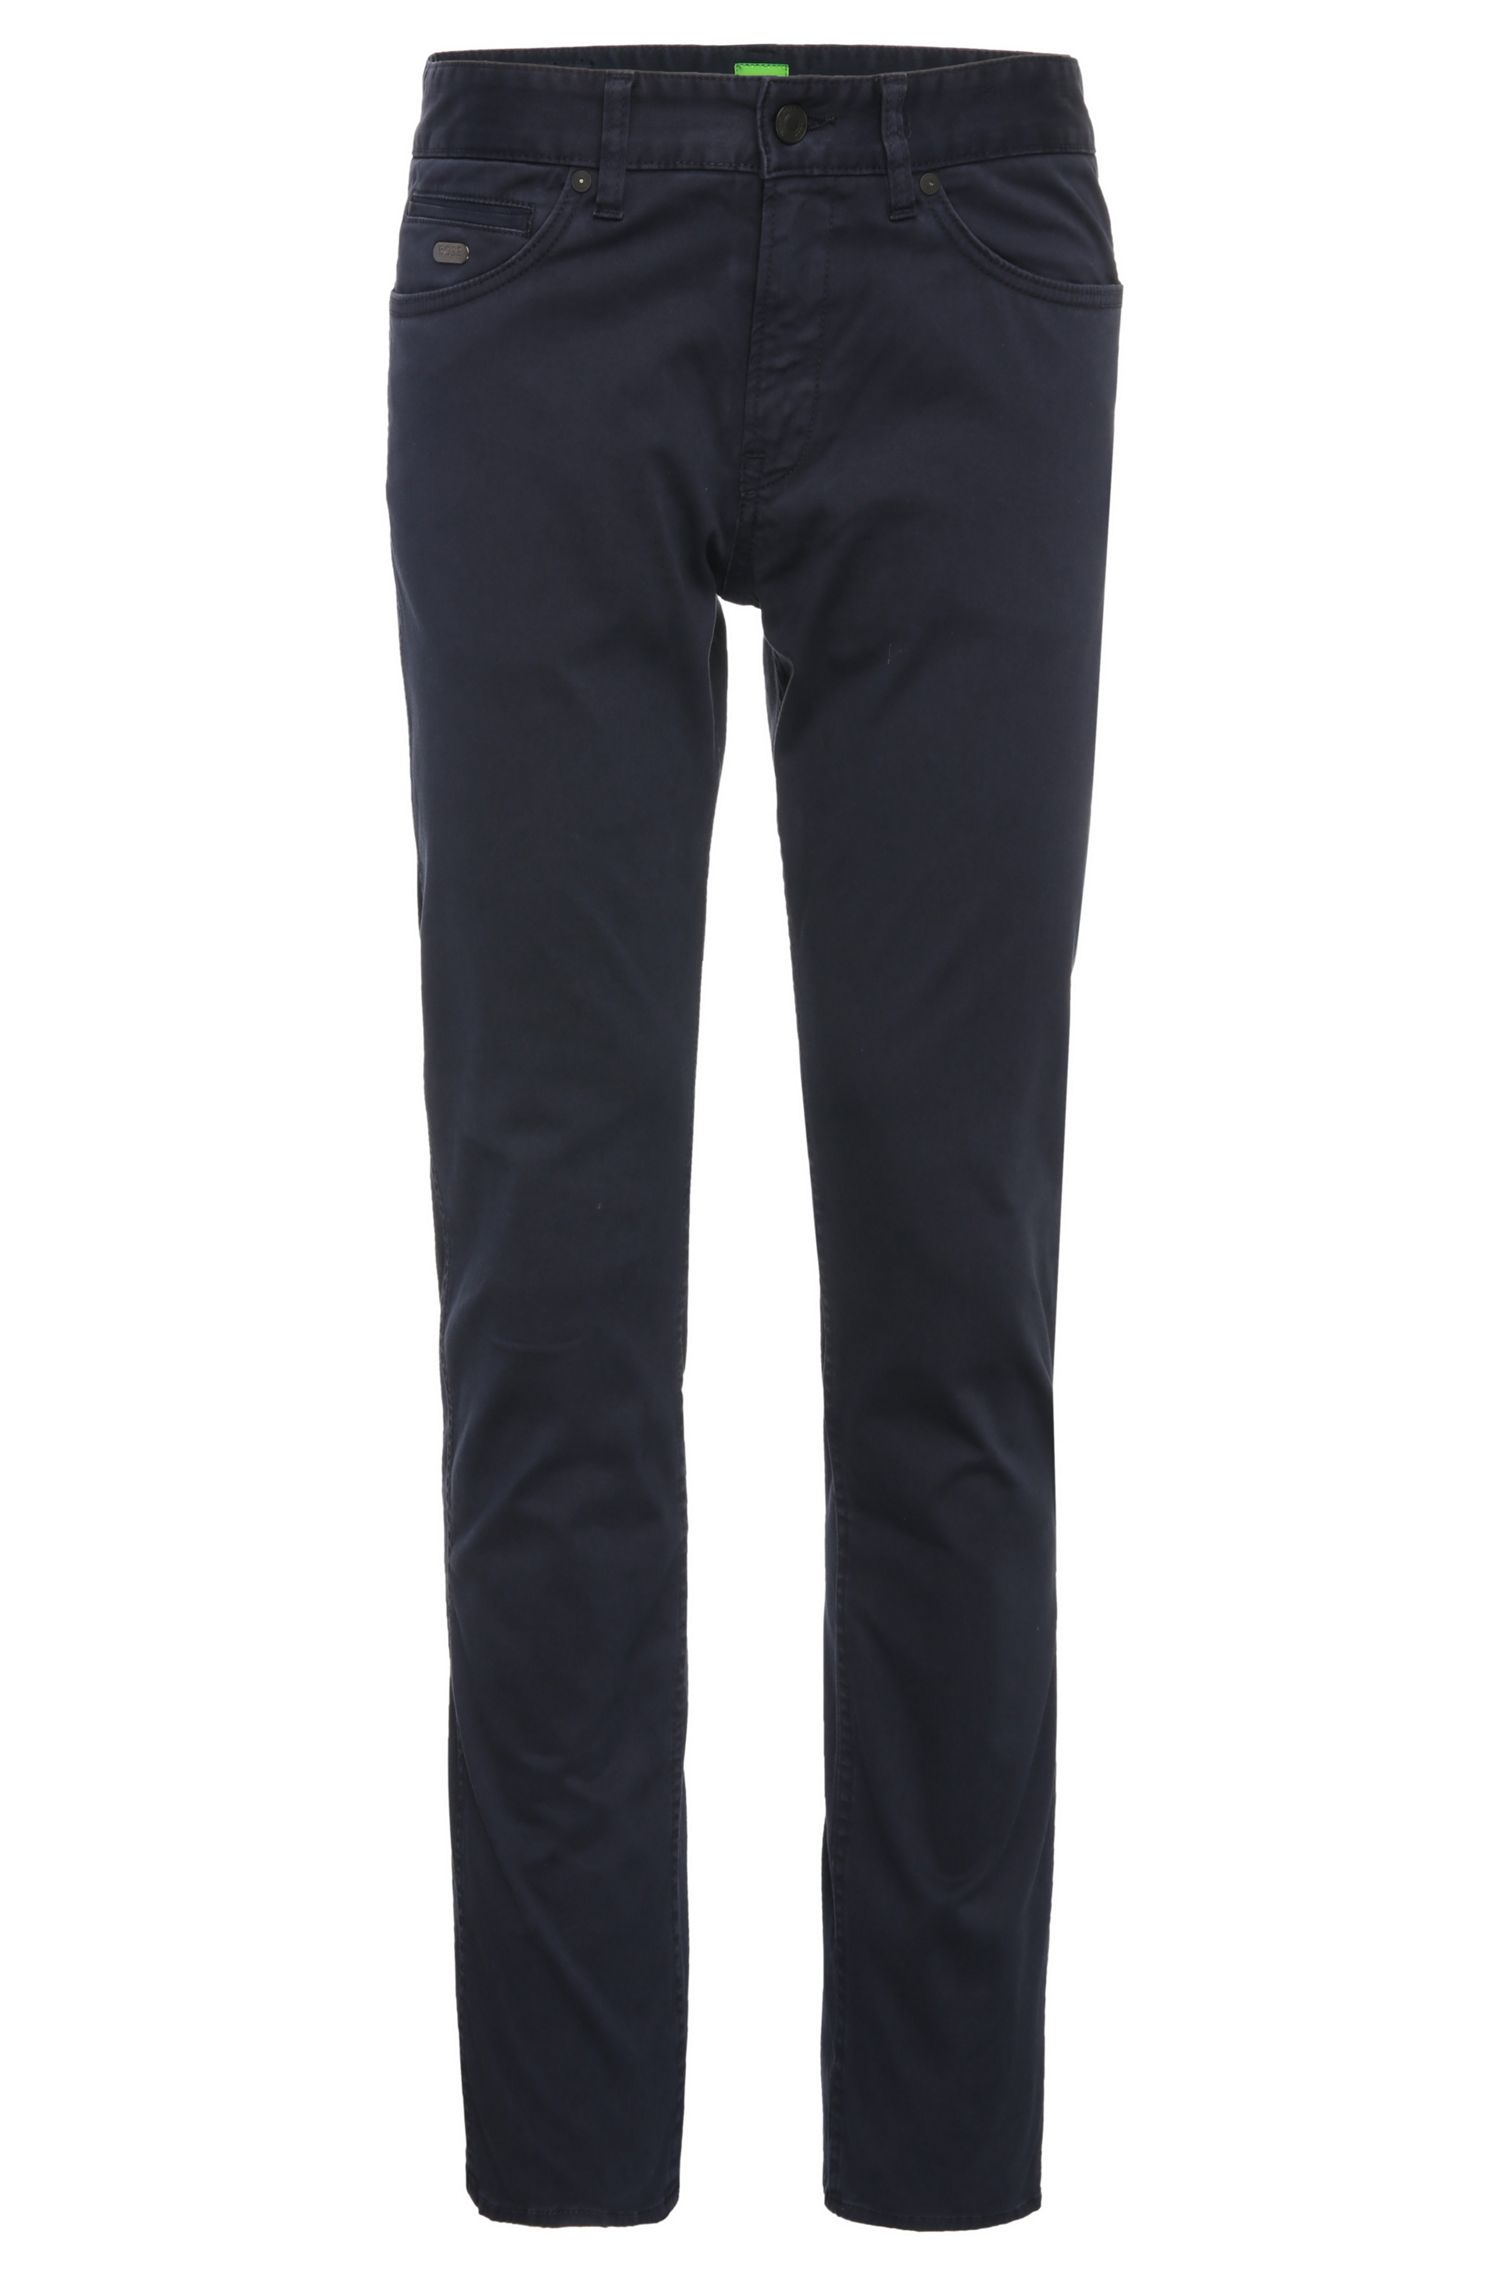 Pantalon Slim Fit en coton extensible : « C-Delaware2-3-20 »